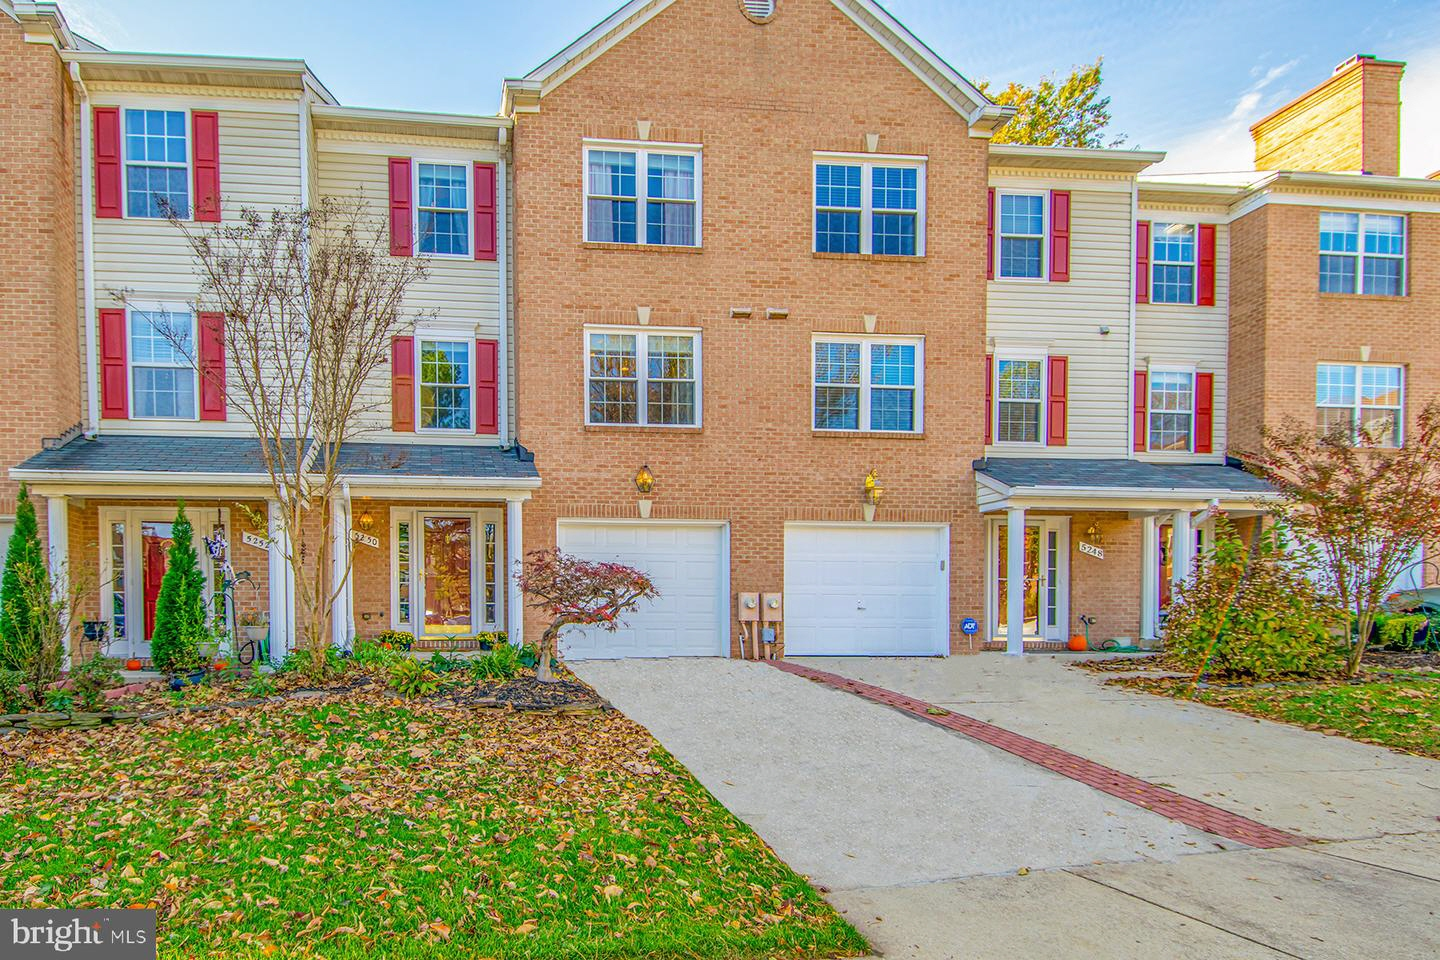 5250 Lightfoot Path, Columbia, MD, 21044 United States